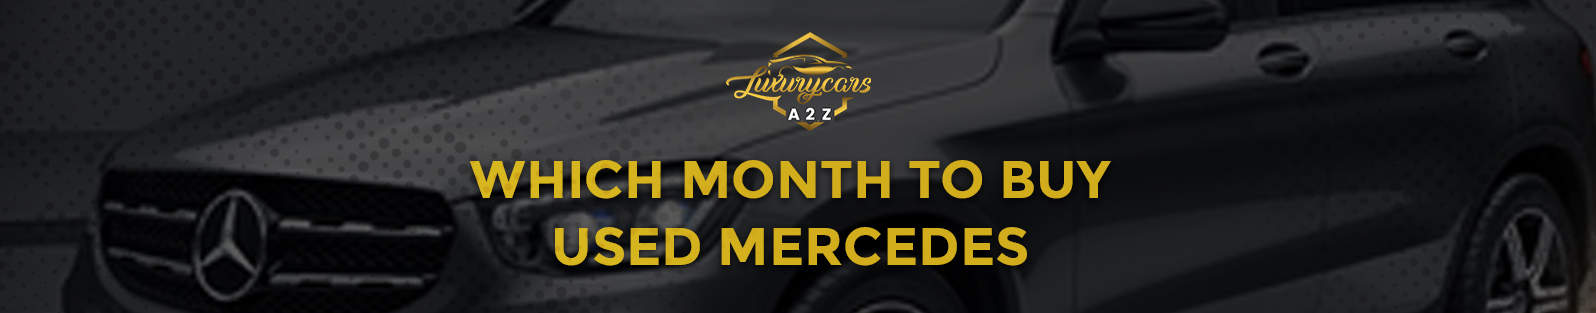 Which month to buy a used Mercedes